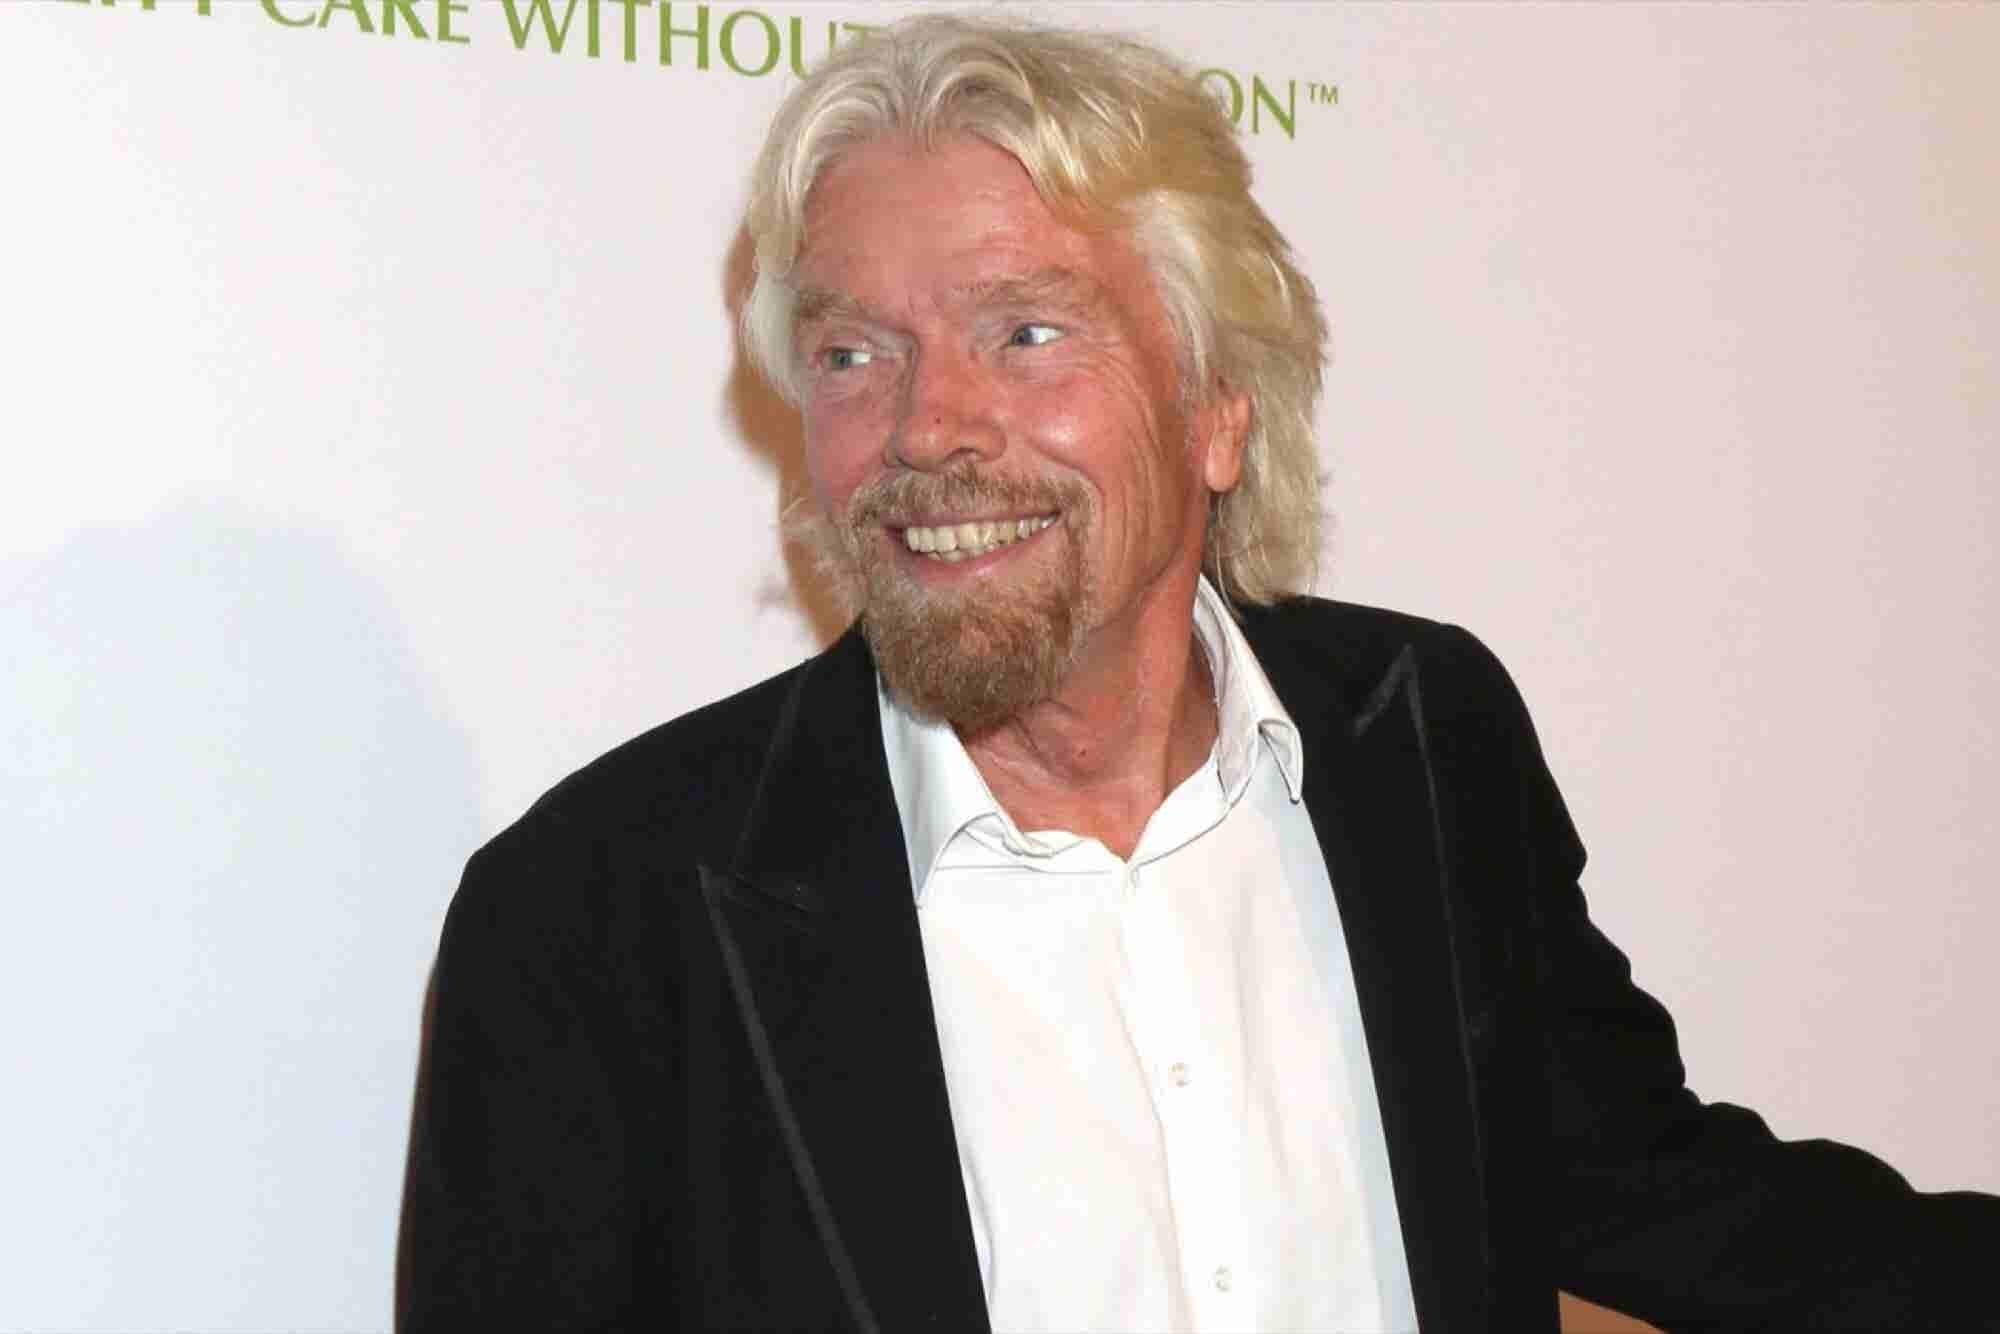 Richard Branson: 'I Don't Believe That Retirement Should Be the Goal'